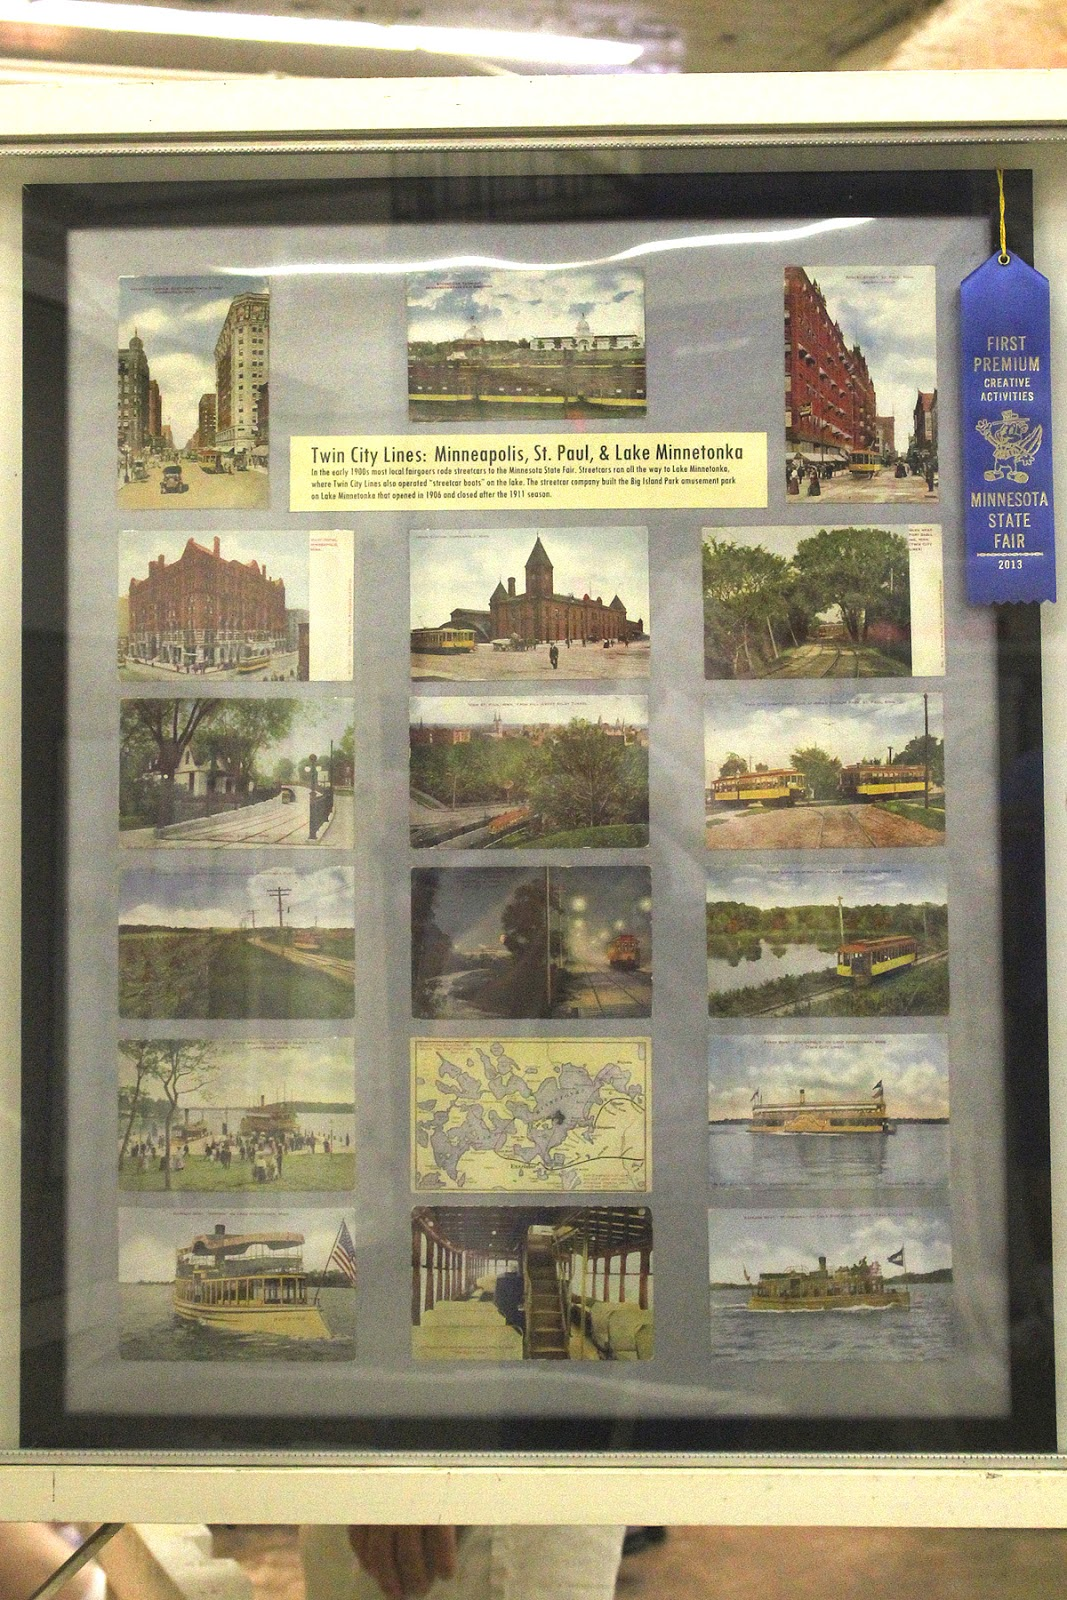 i entered some post card frames in the minnesota state fair for the first time this year i entered a frame of twin city lines postcards by v o hammon in